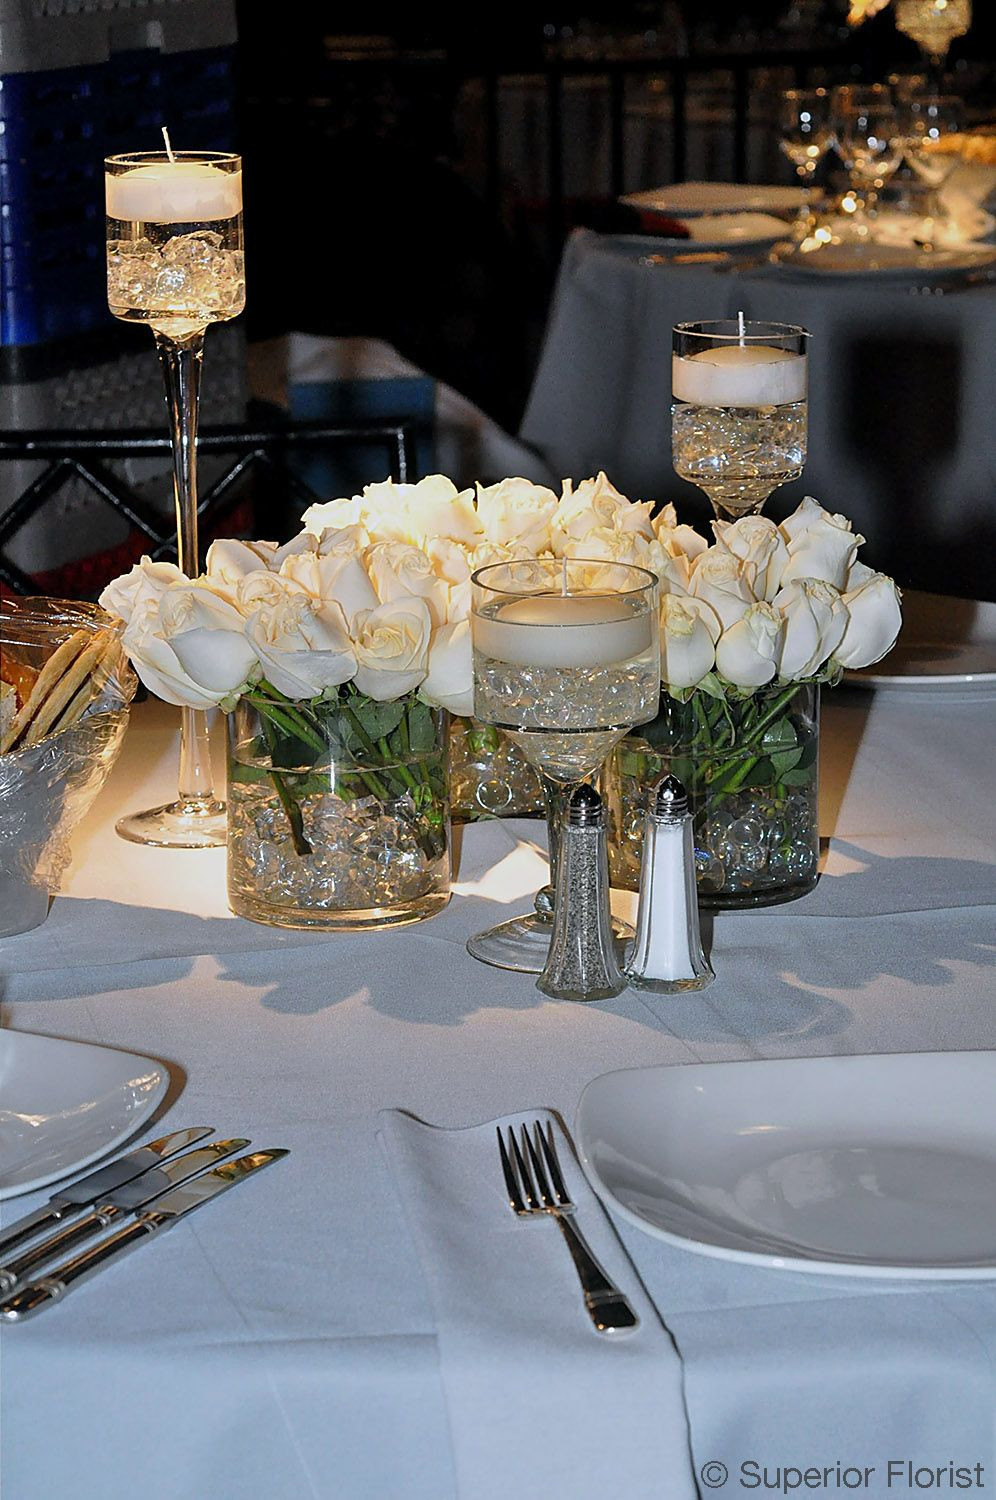 Glass Vase with Stem Of Superior Florist Centerpieces Group Of Three Glass Cylinder Throughout Superior Florist Centerpieces Group Of Three Glass Cylinder Vases Of White Roses Vases Matched with Three Candleholders Each with A Floating Candle